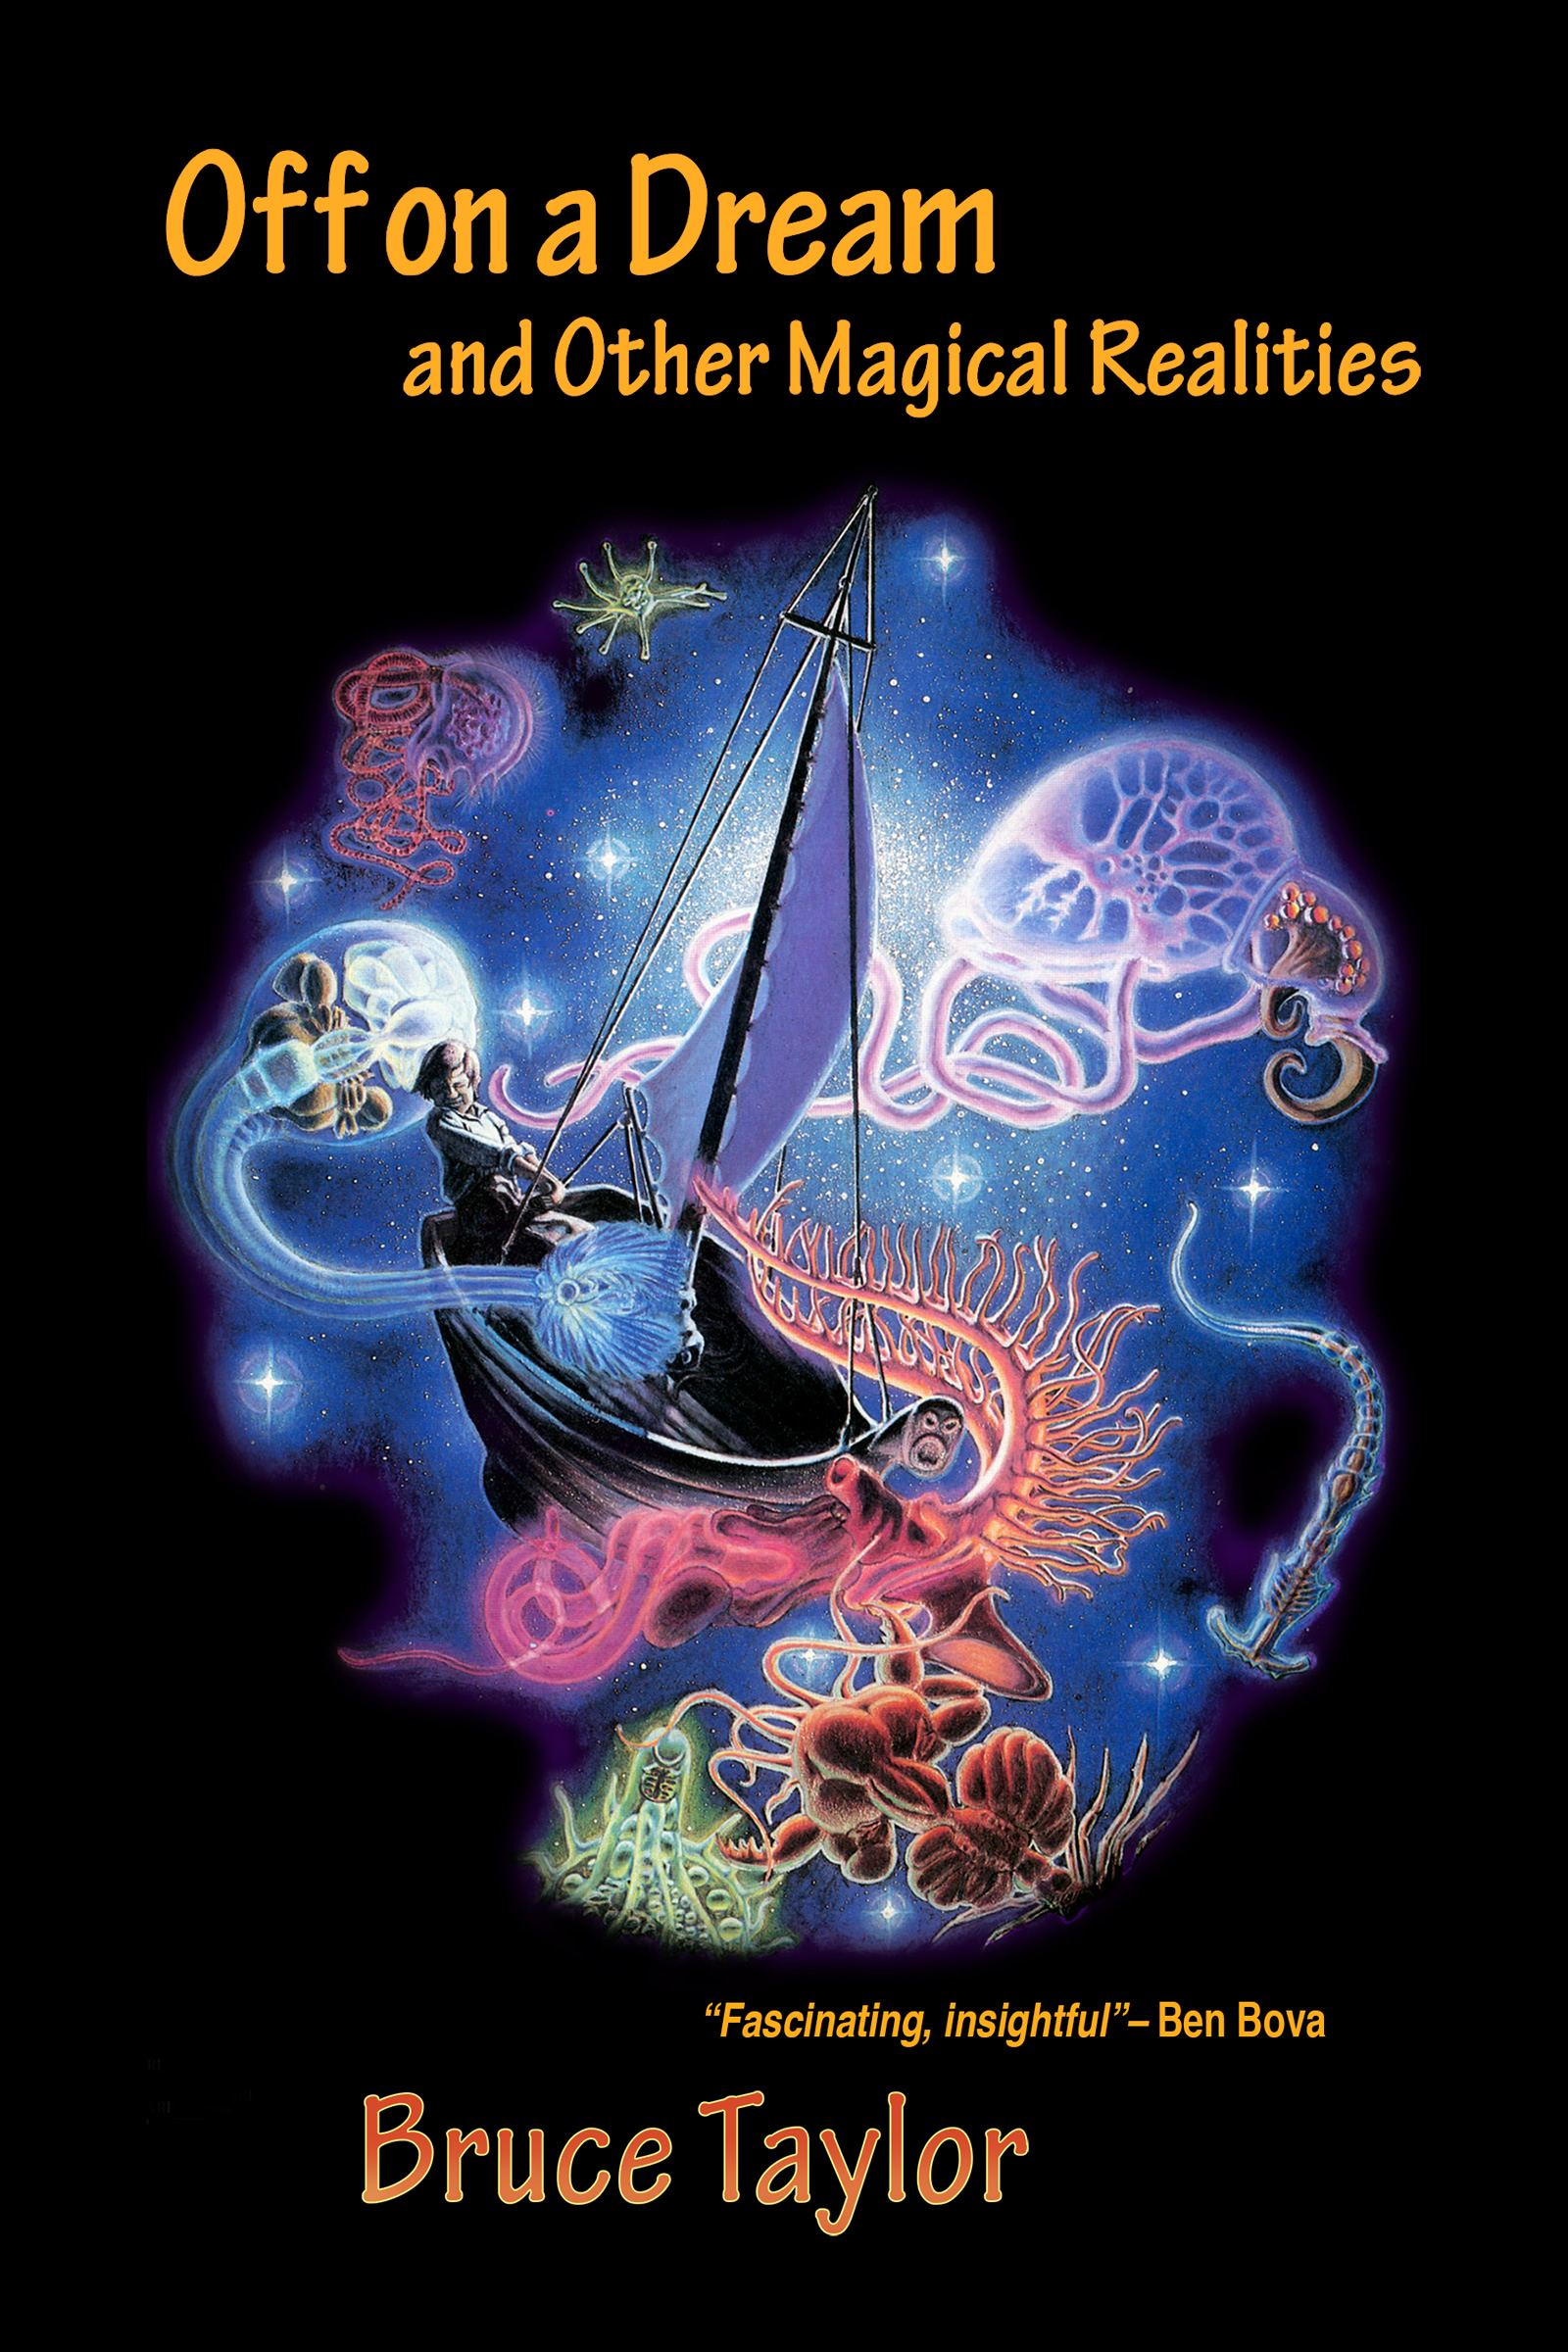 Off on a Dream and other magical realities